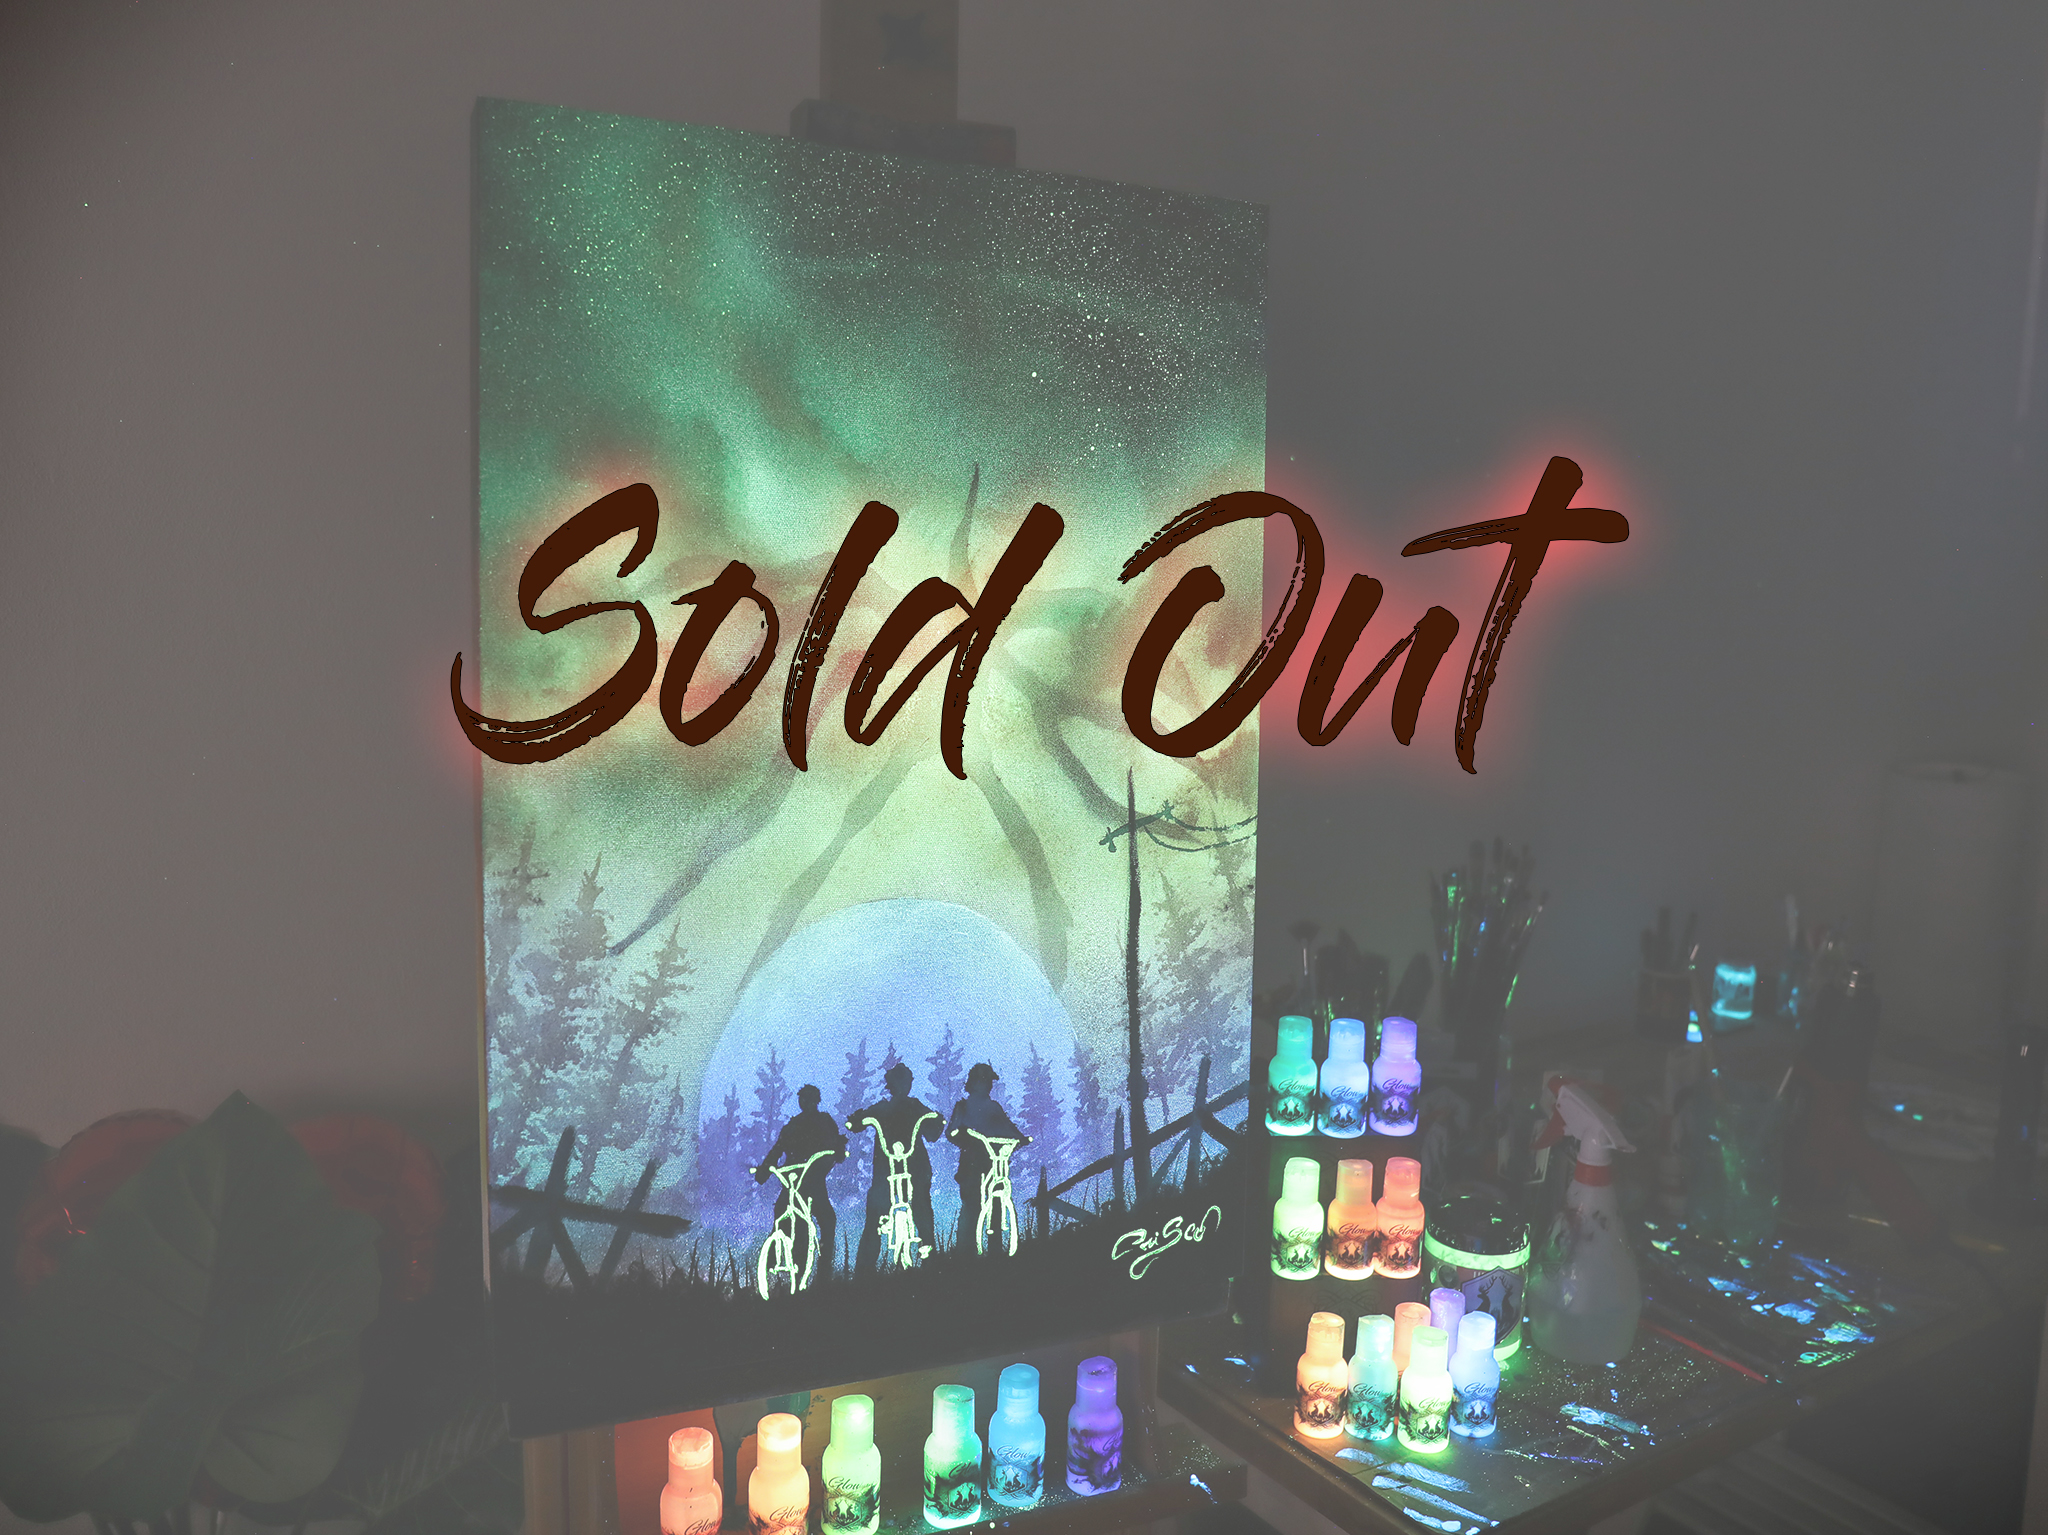 sold out filesstranger